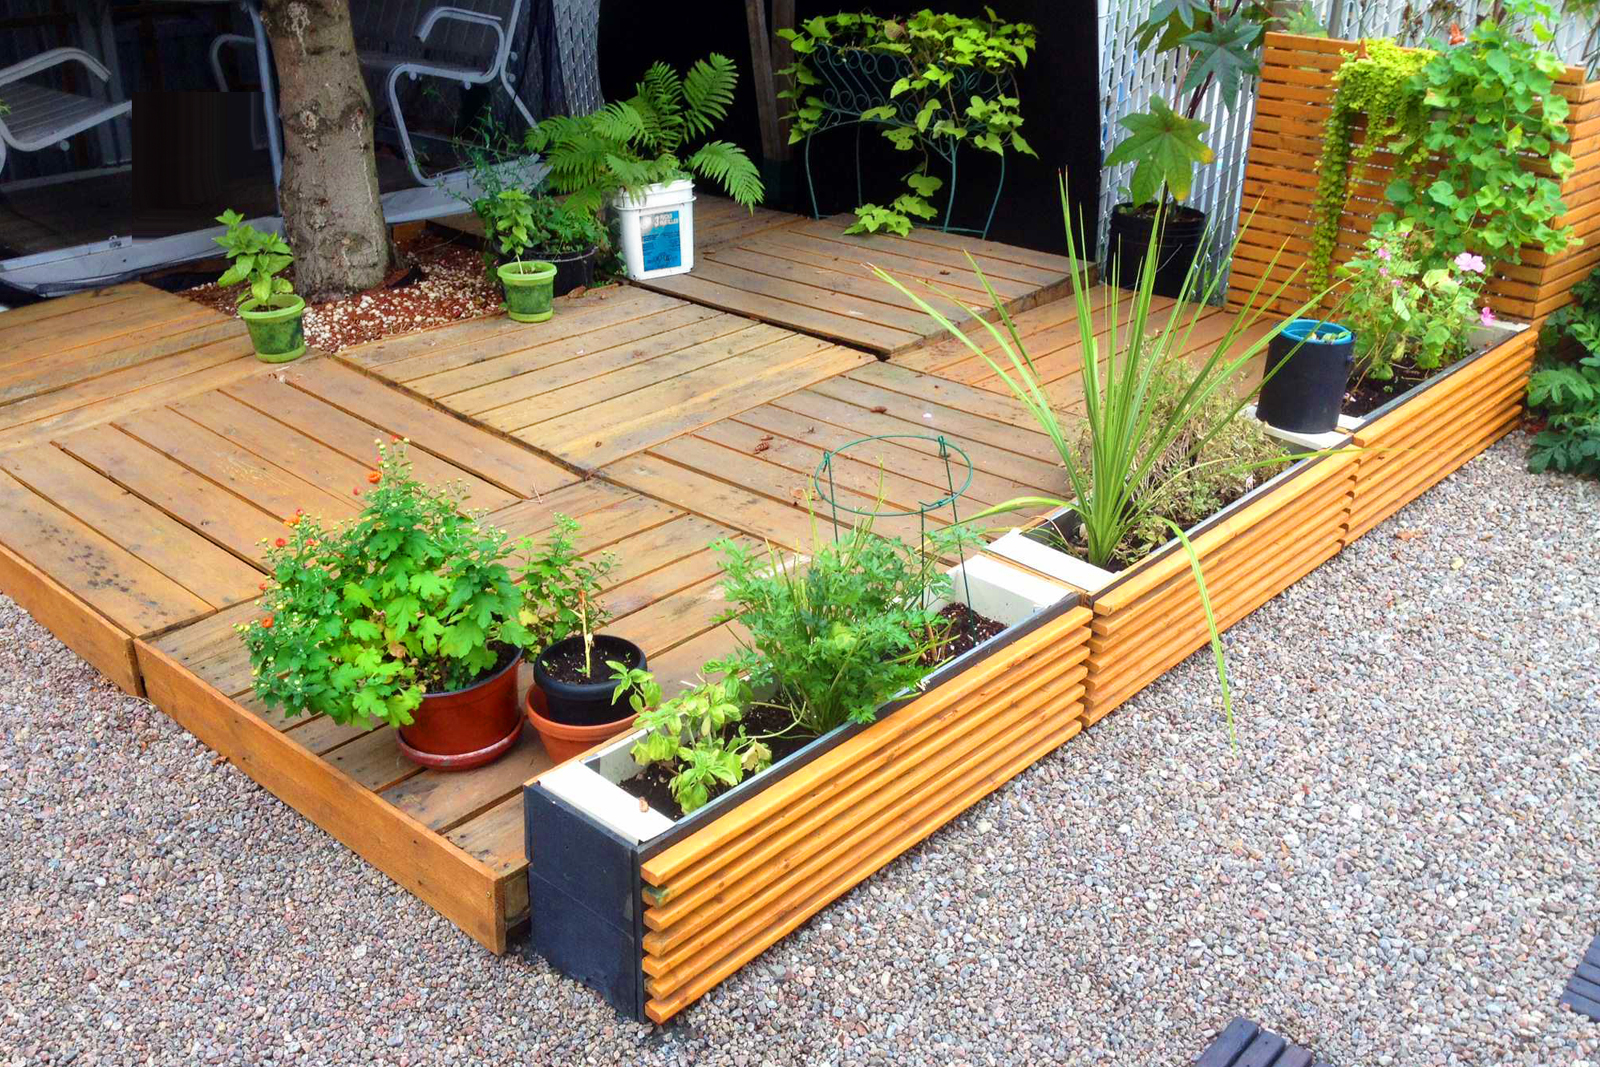 DIY pallet deck outside a home